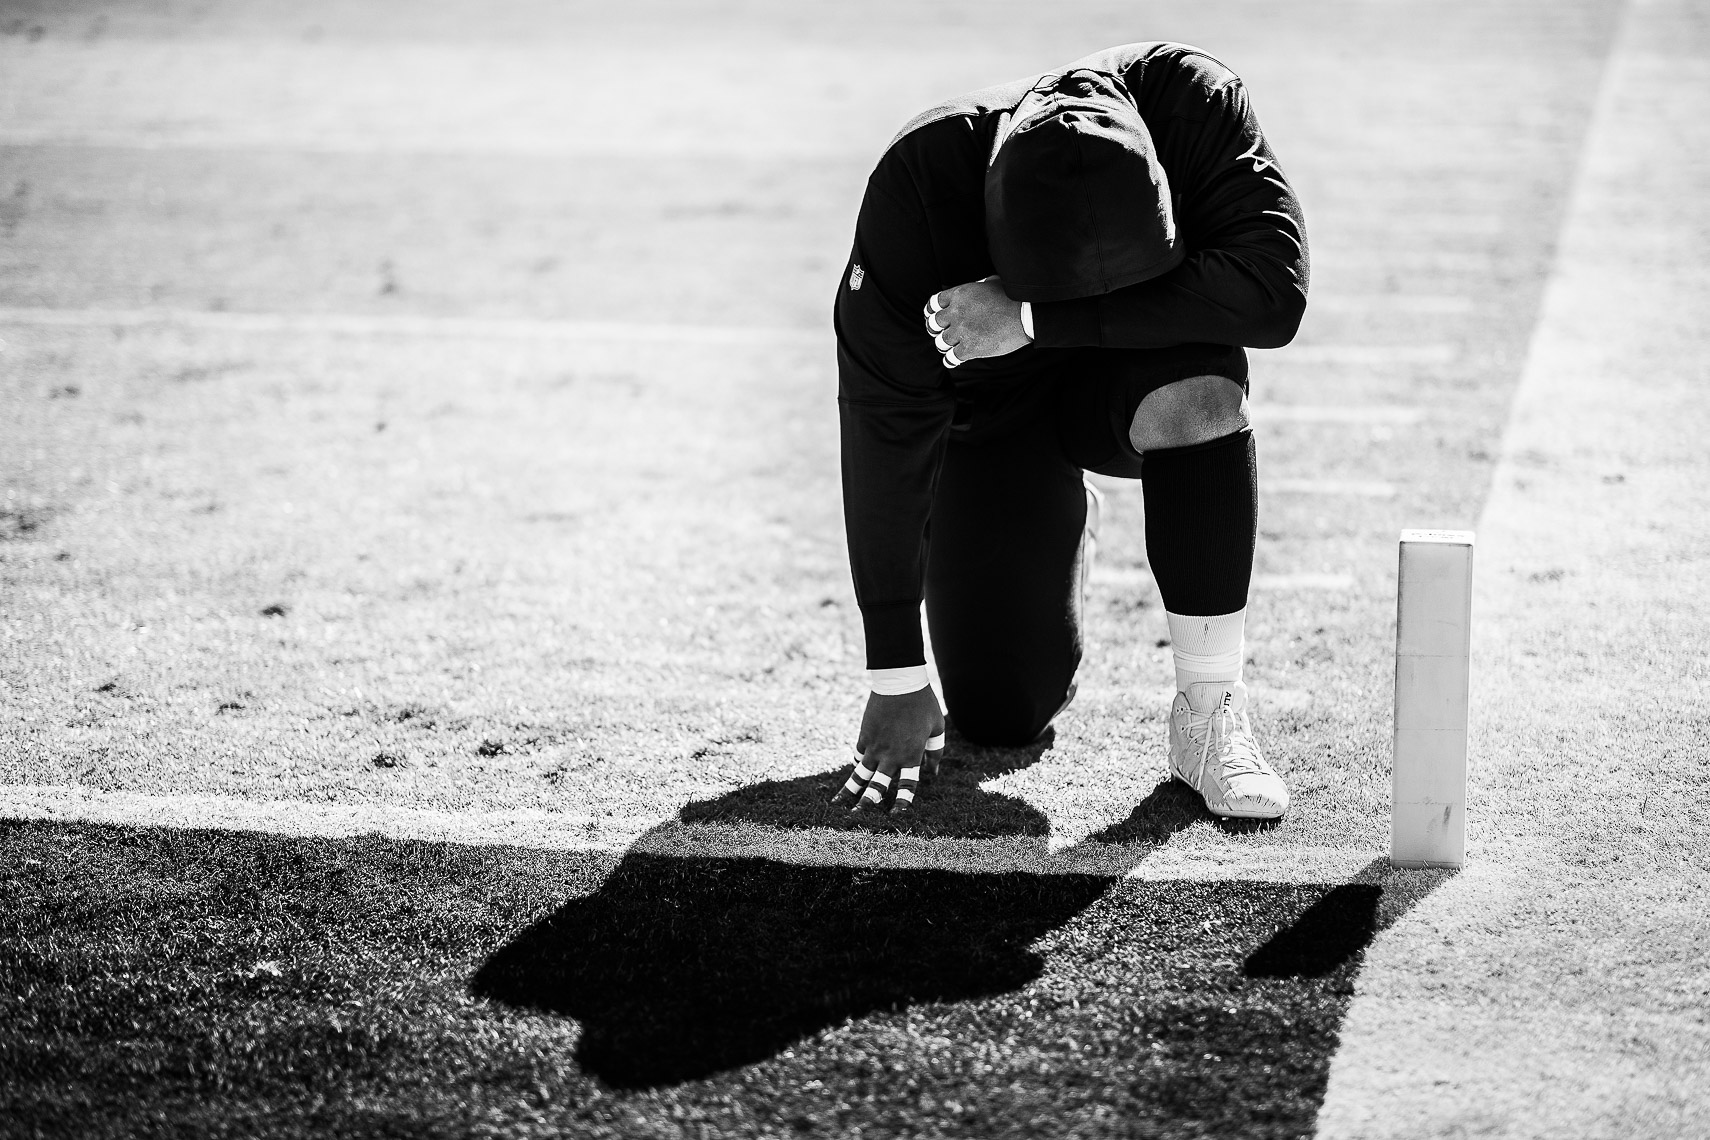 NFL player Orlando Brown Jr. kneels to pray